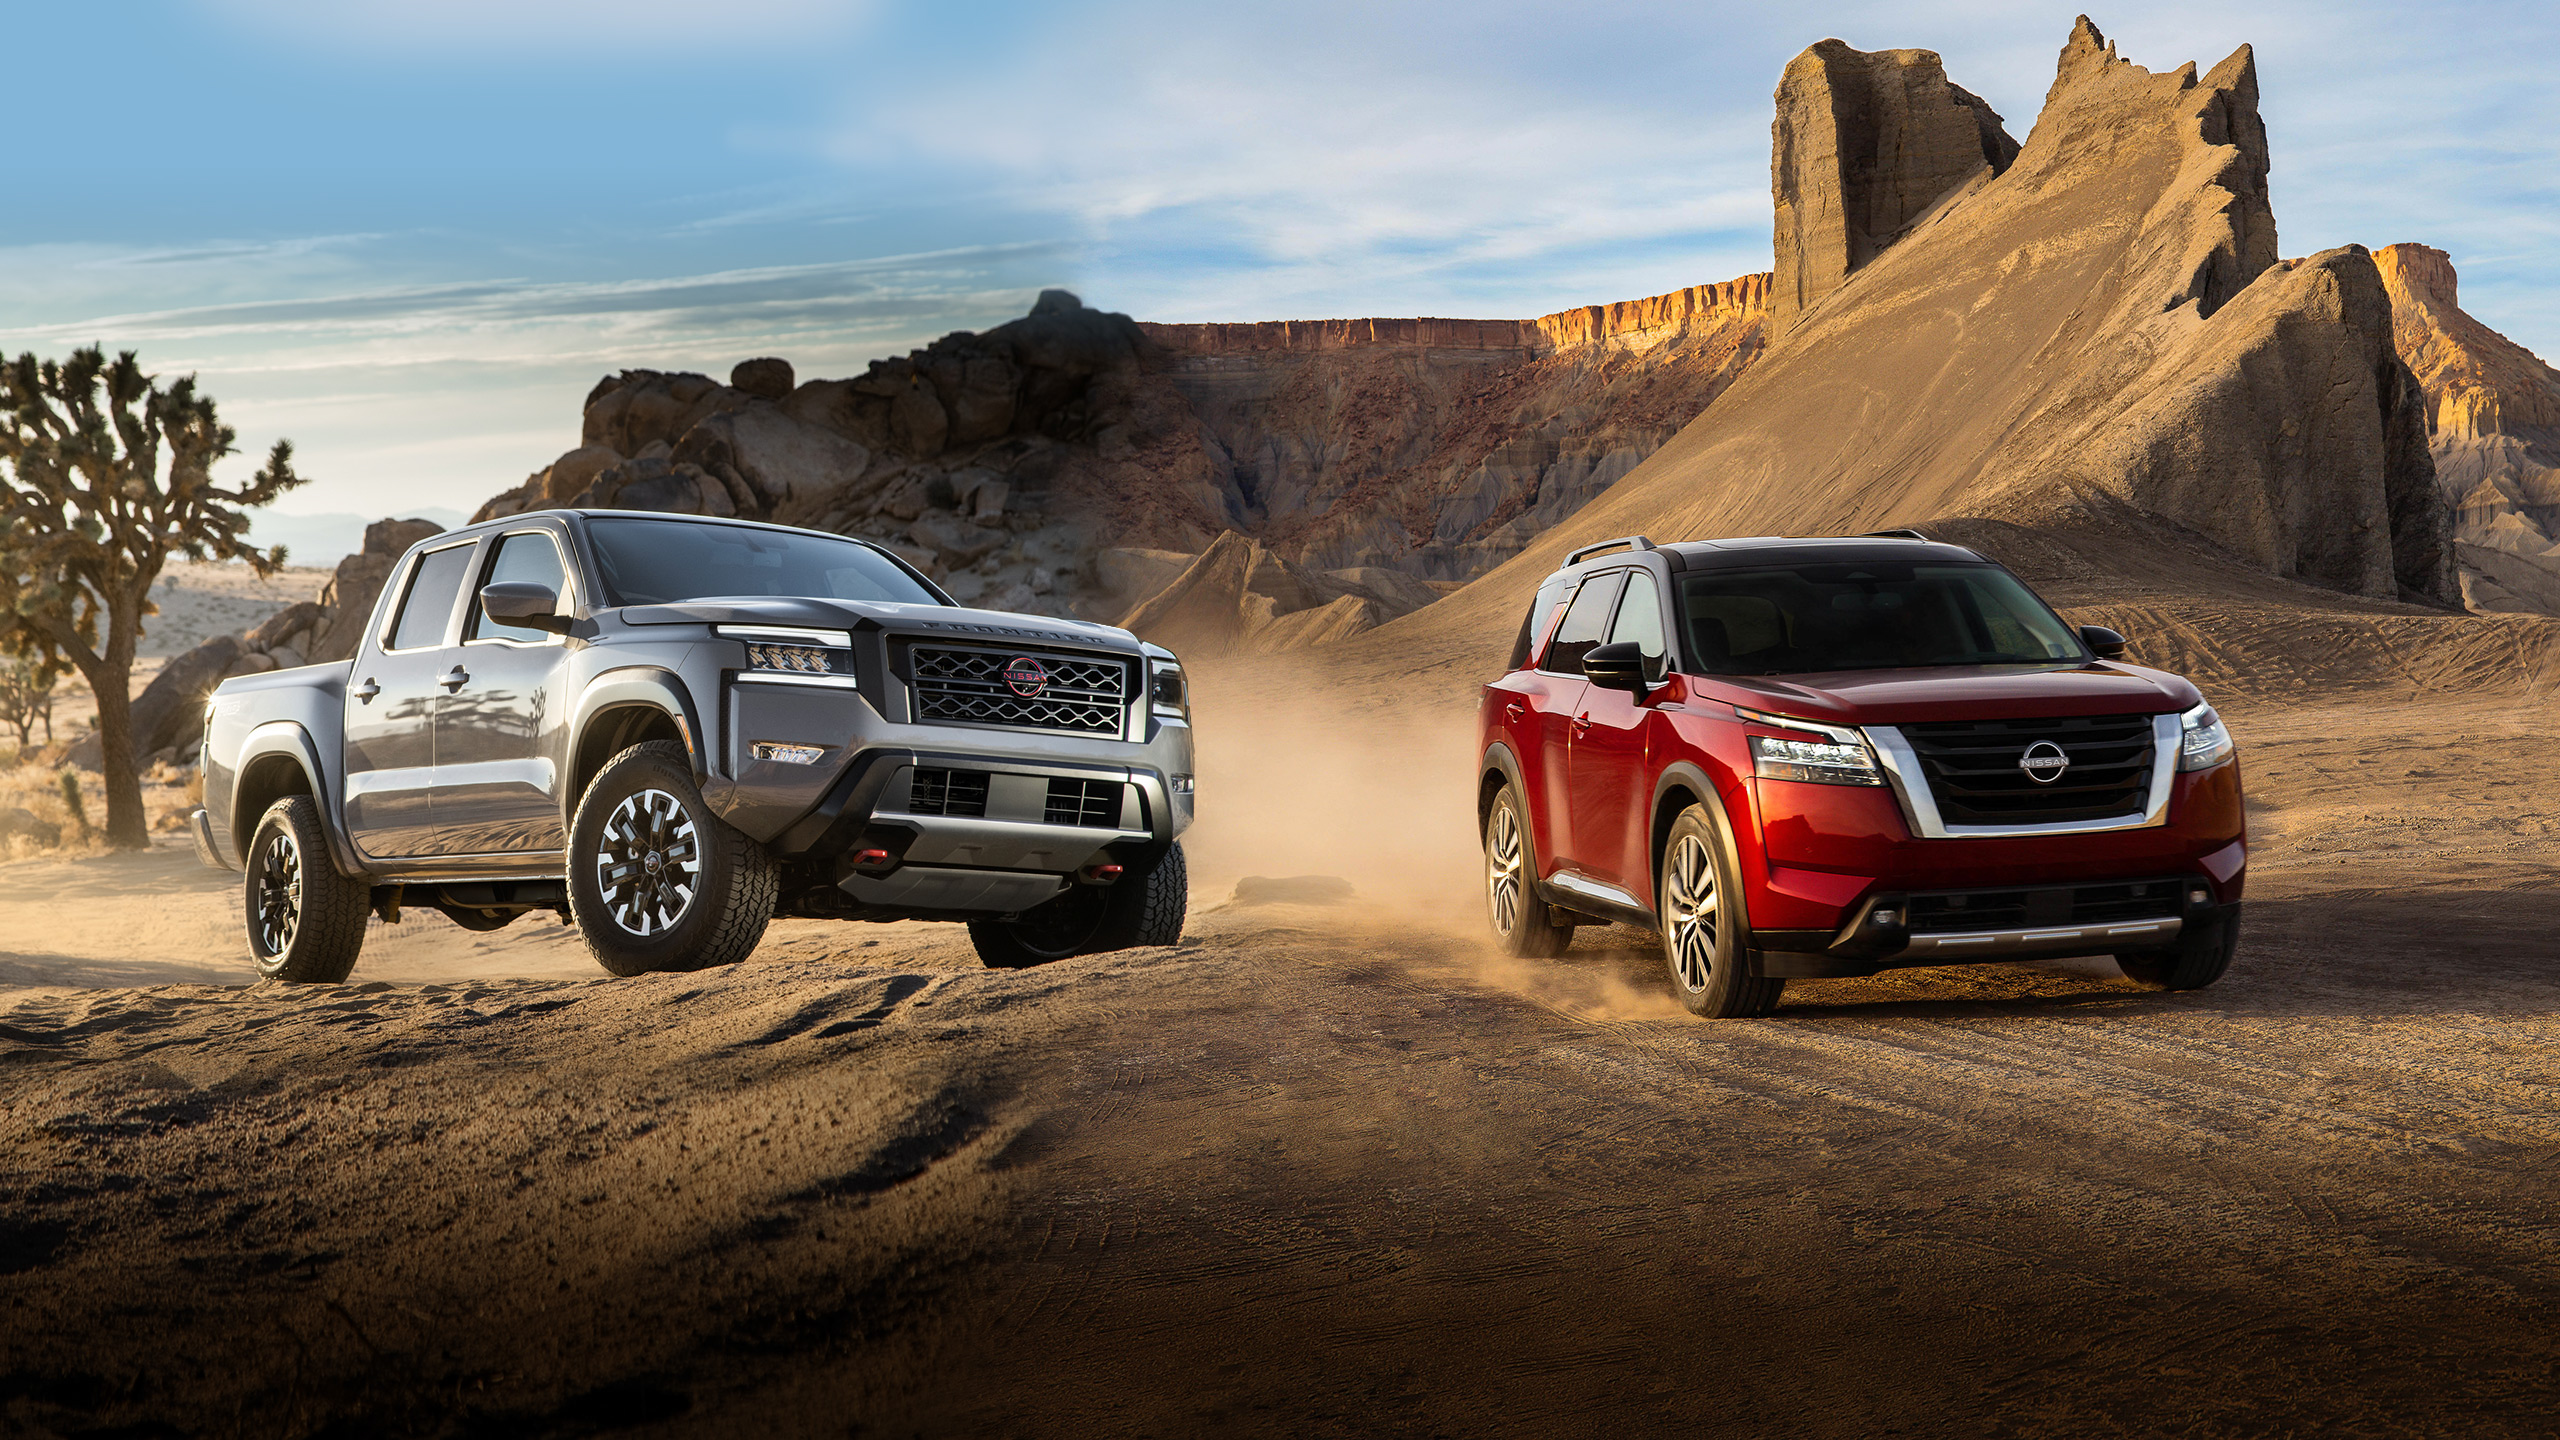 All-new 2022 Nissan Frontier and all-new 2022 Pathfinder